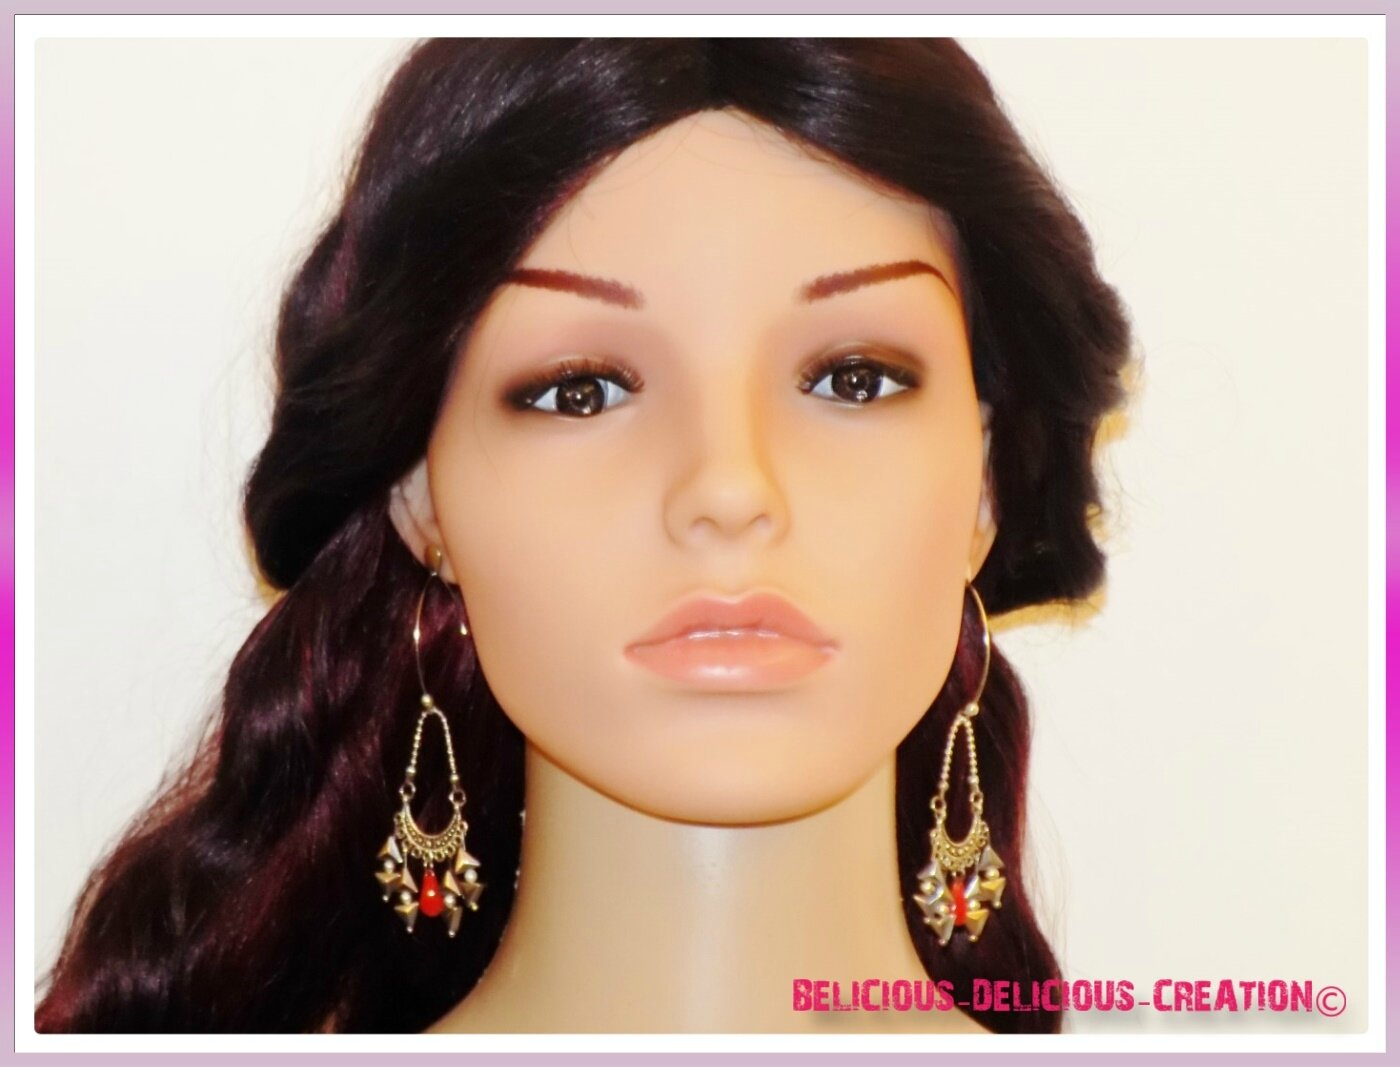 Original Boucles d'oreilles !! CHANDELIER !! en Metal T: 6cm BELICIOUS-DELICIOUS-CREATION